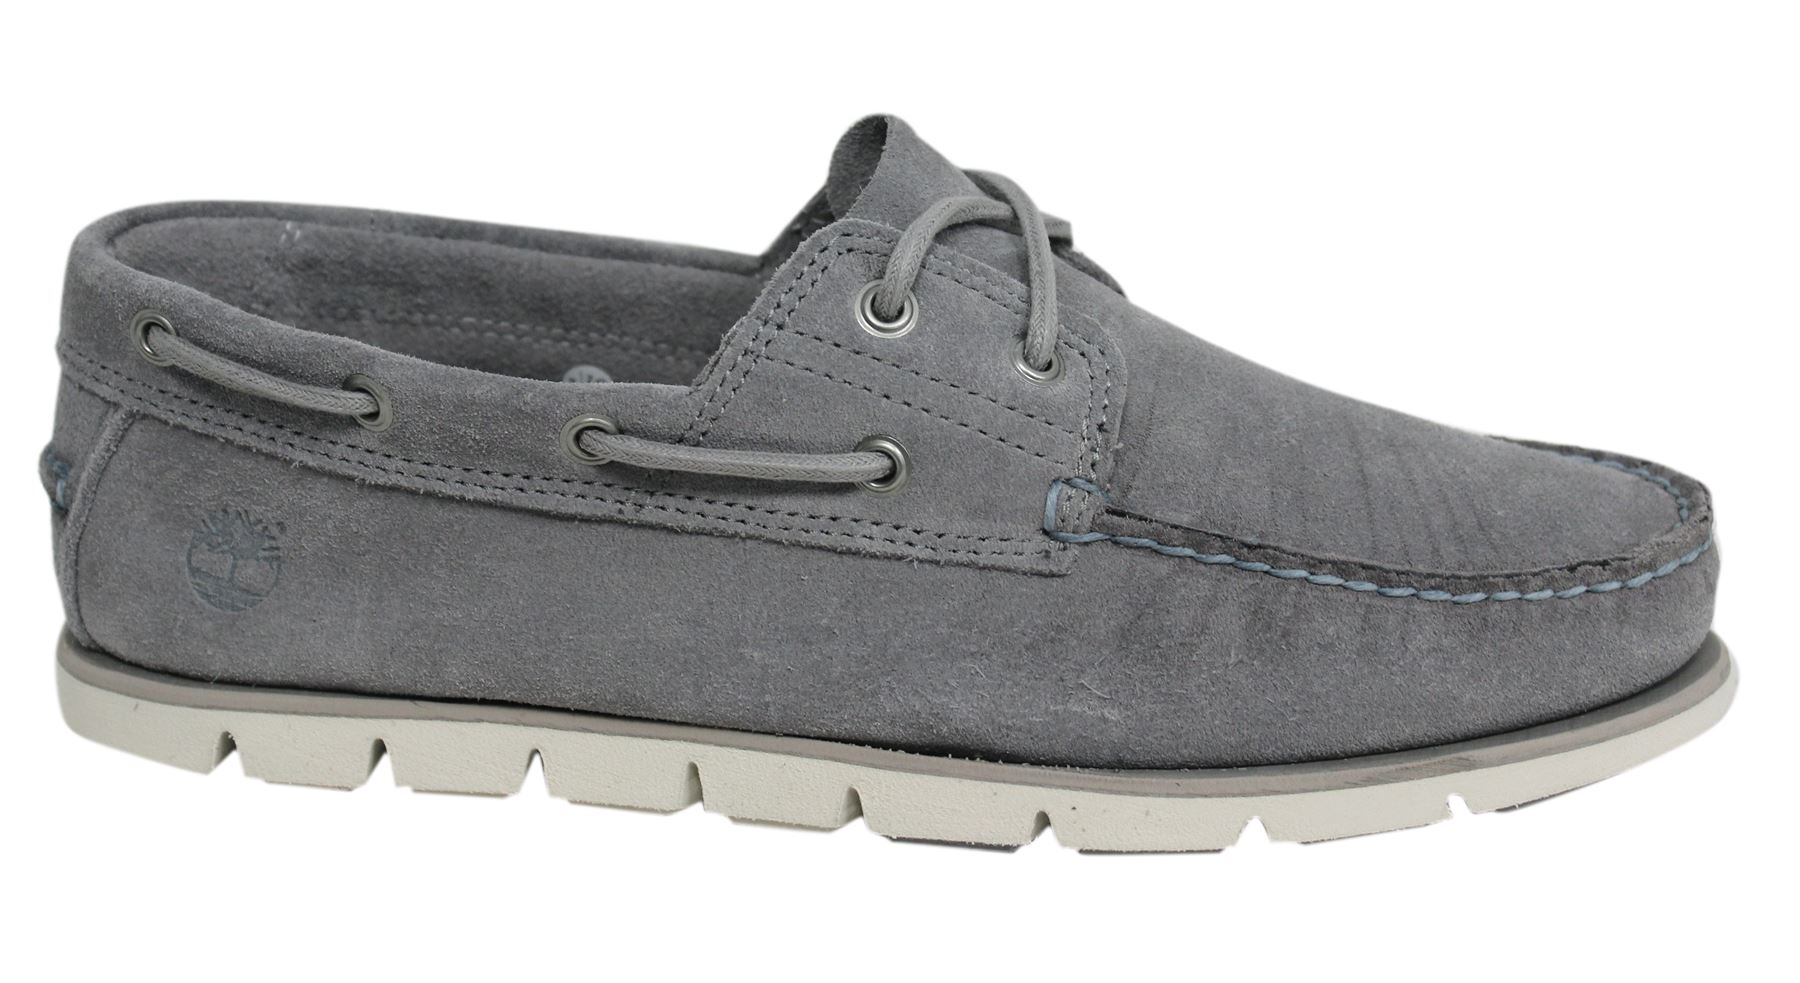 fd3a585ebed48 Timberland 2 Eye Classic Lace Up Grey Suede Leather Mens Boat Shoes A1HBD  D72